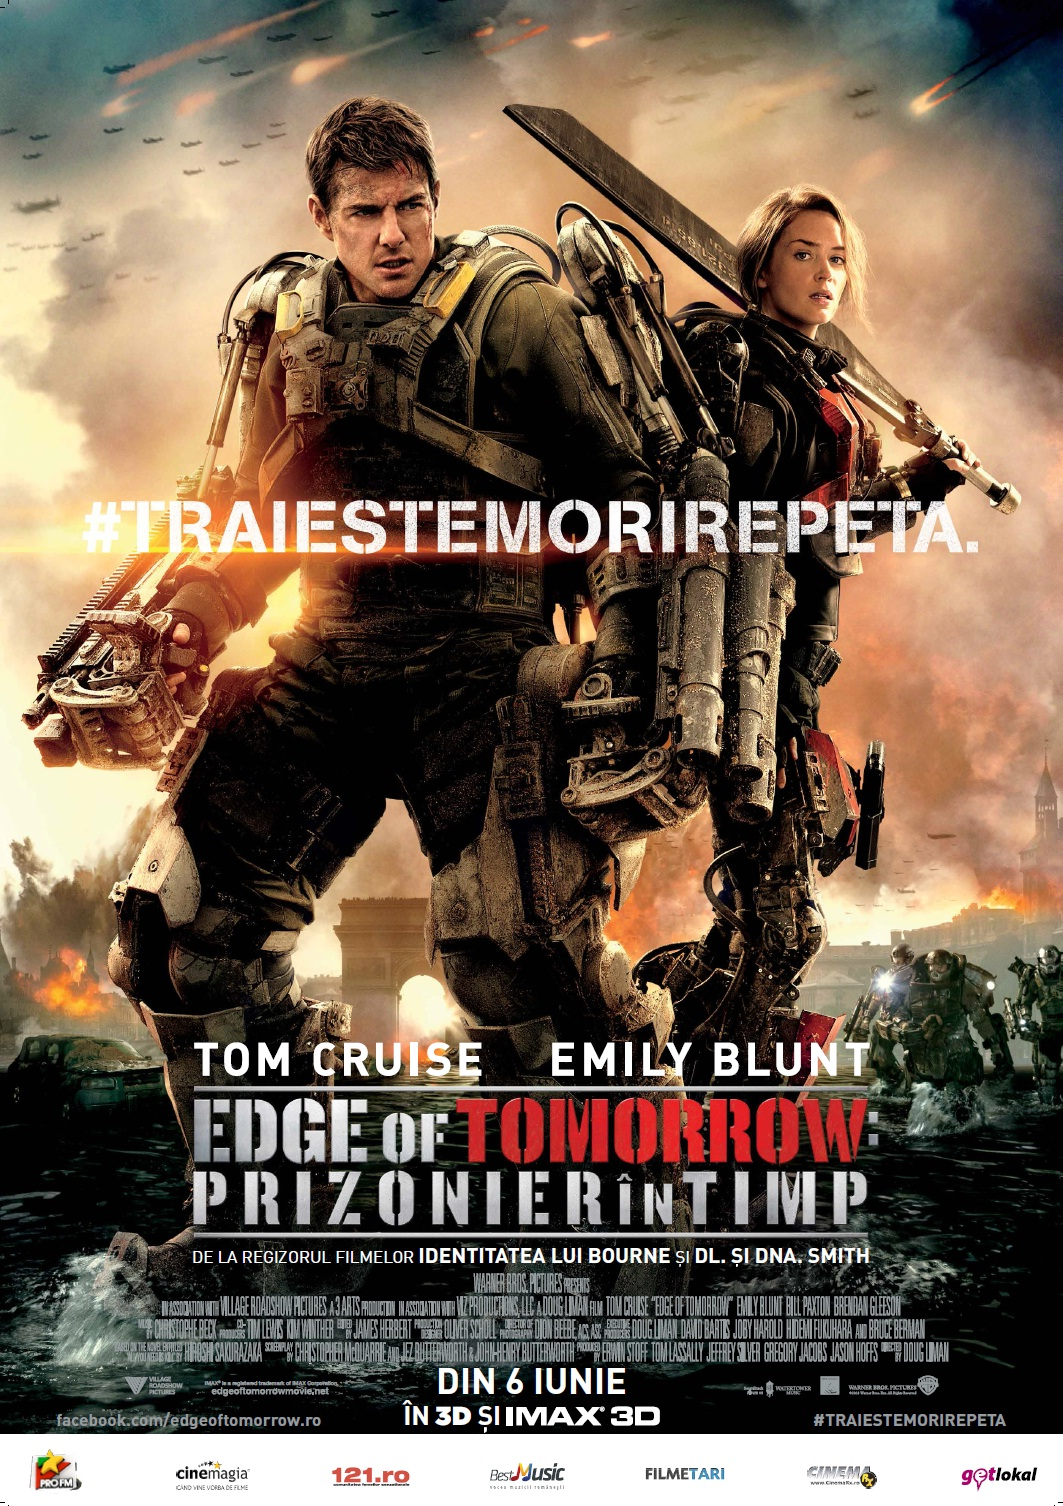 Edge of Tomorrow: Prizonier in timp 3D